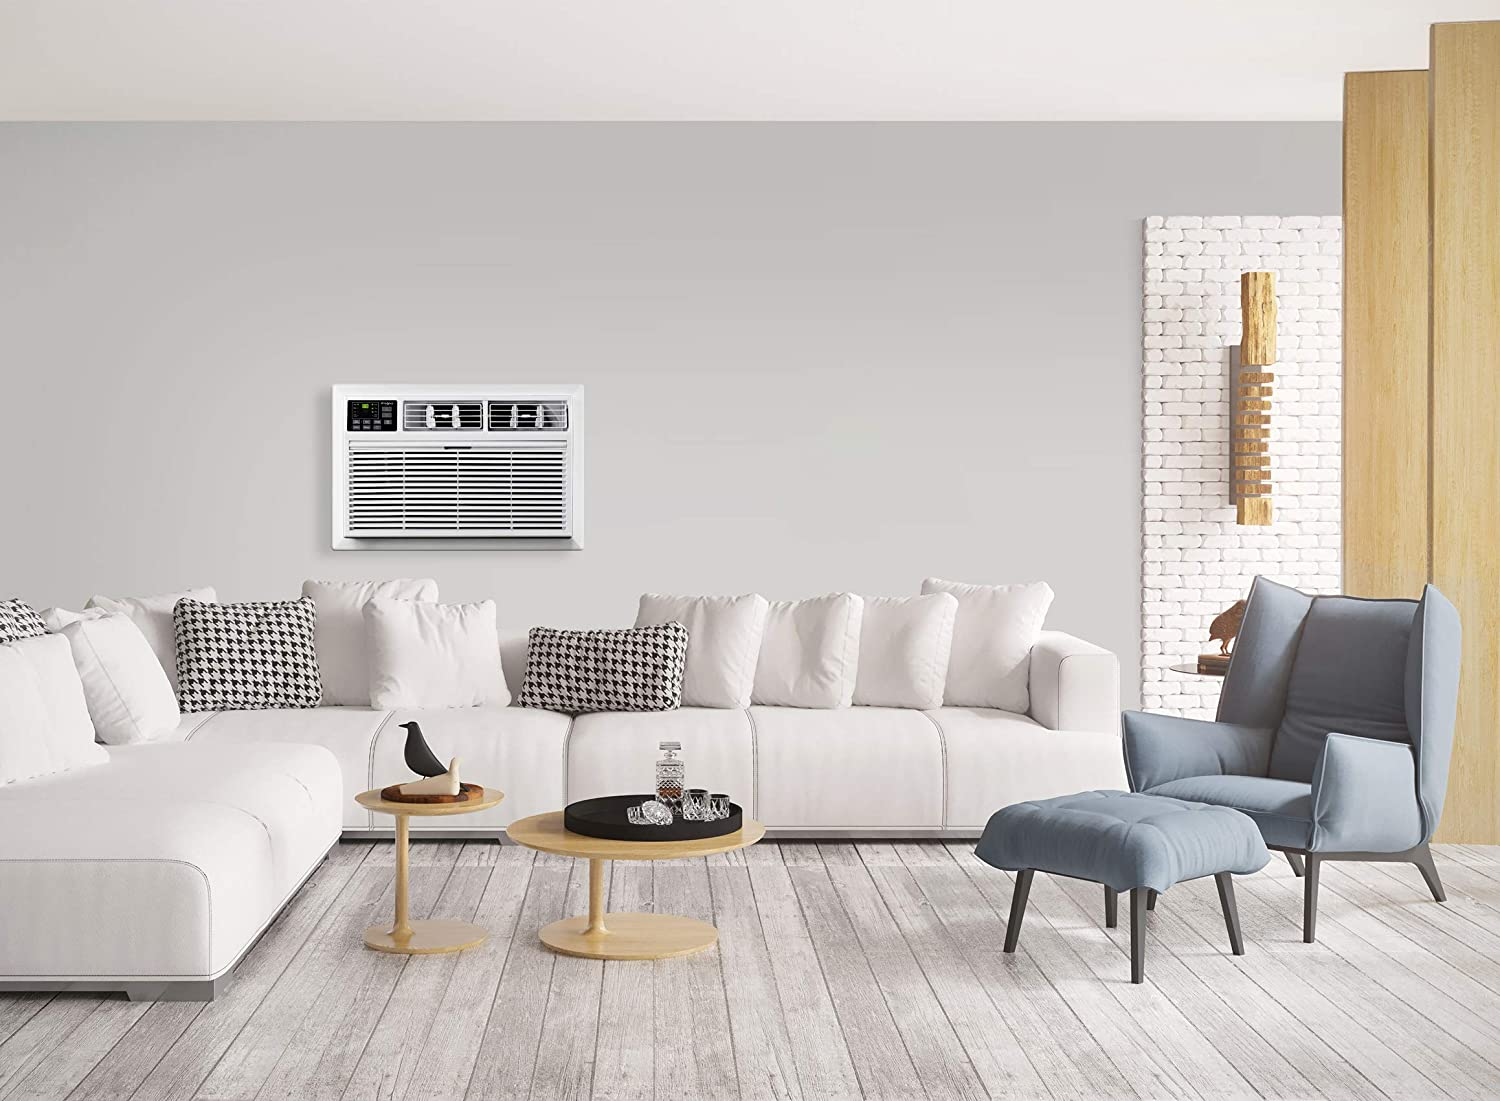 Whirlpool Energy Star 10,000 BTU 115V Through-The-Wall Air Conditioner with Remote Control, White